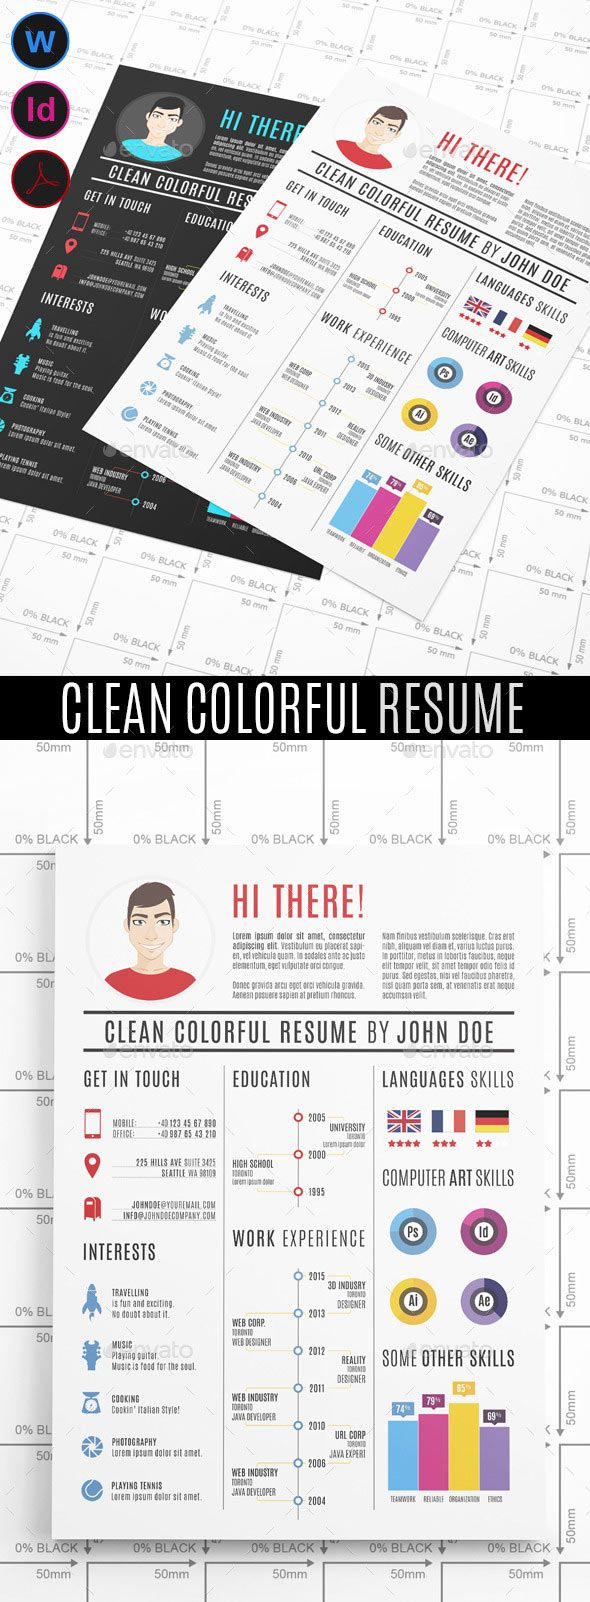 best images about infographic visual resumes colorful graphic design resume